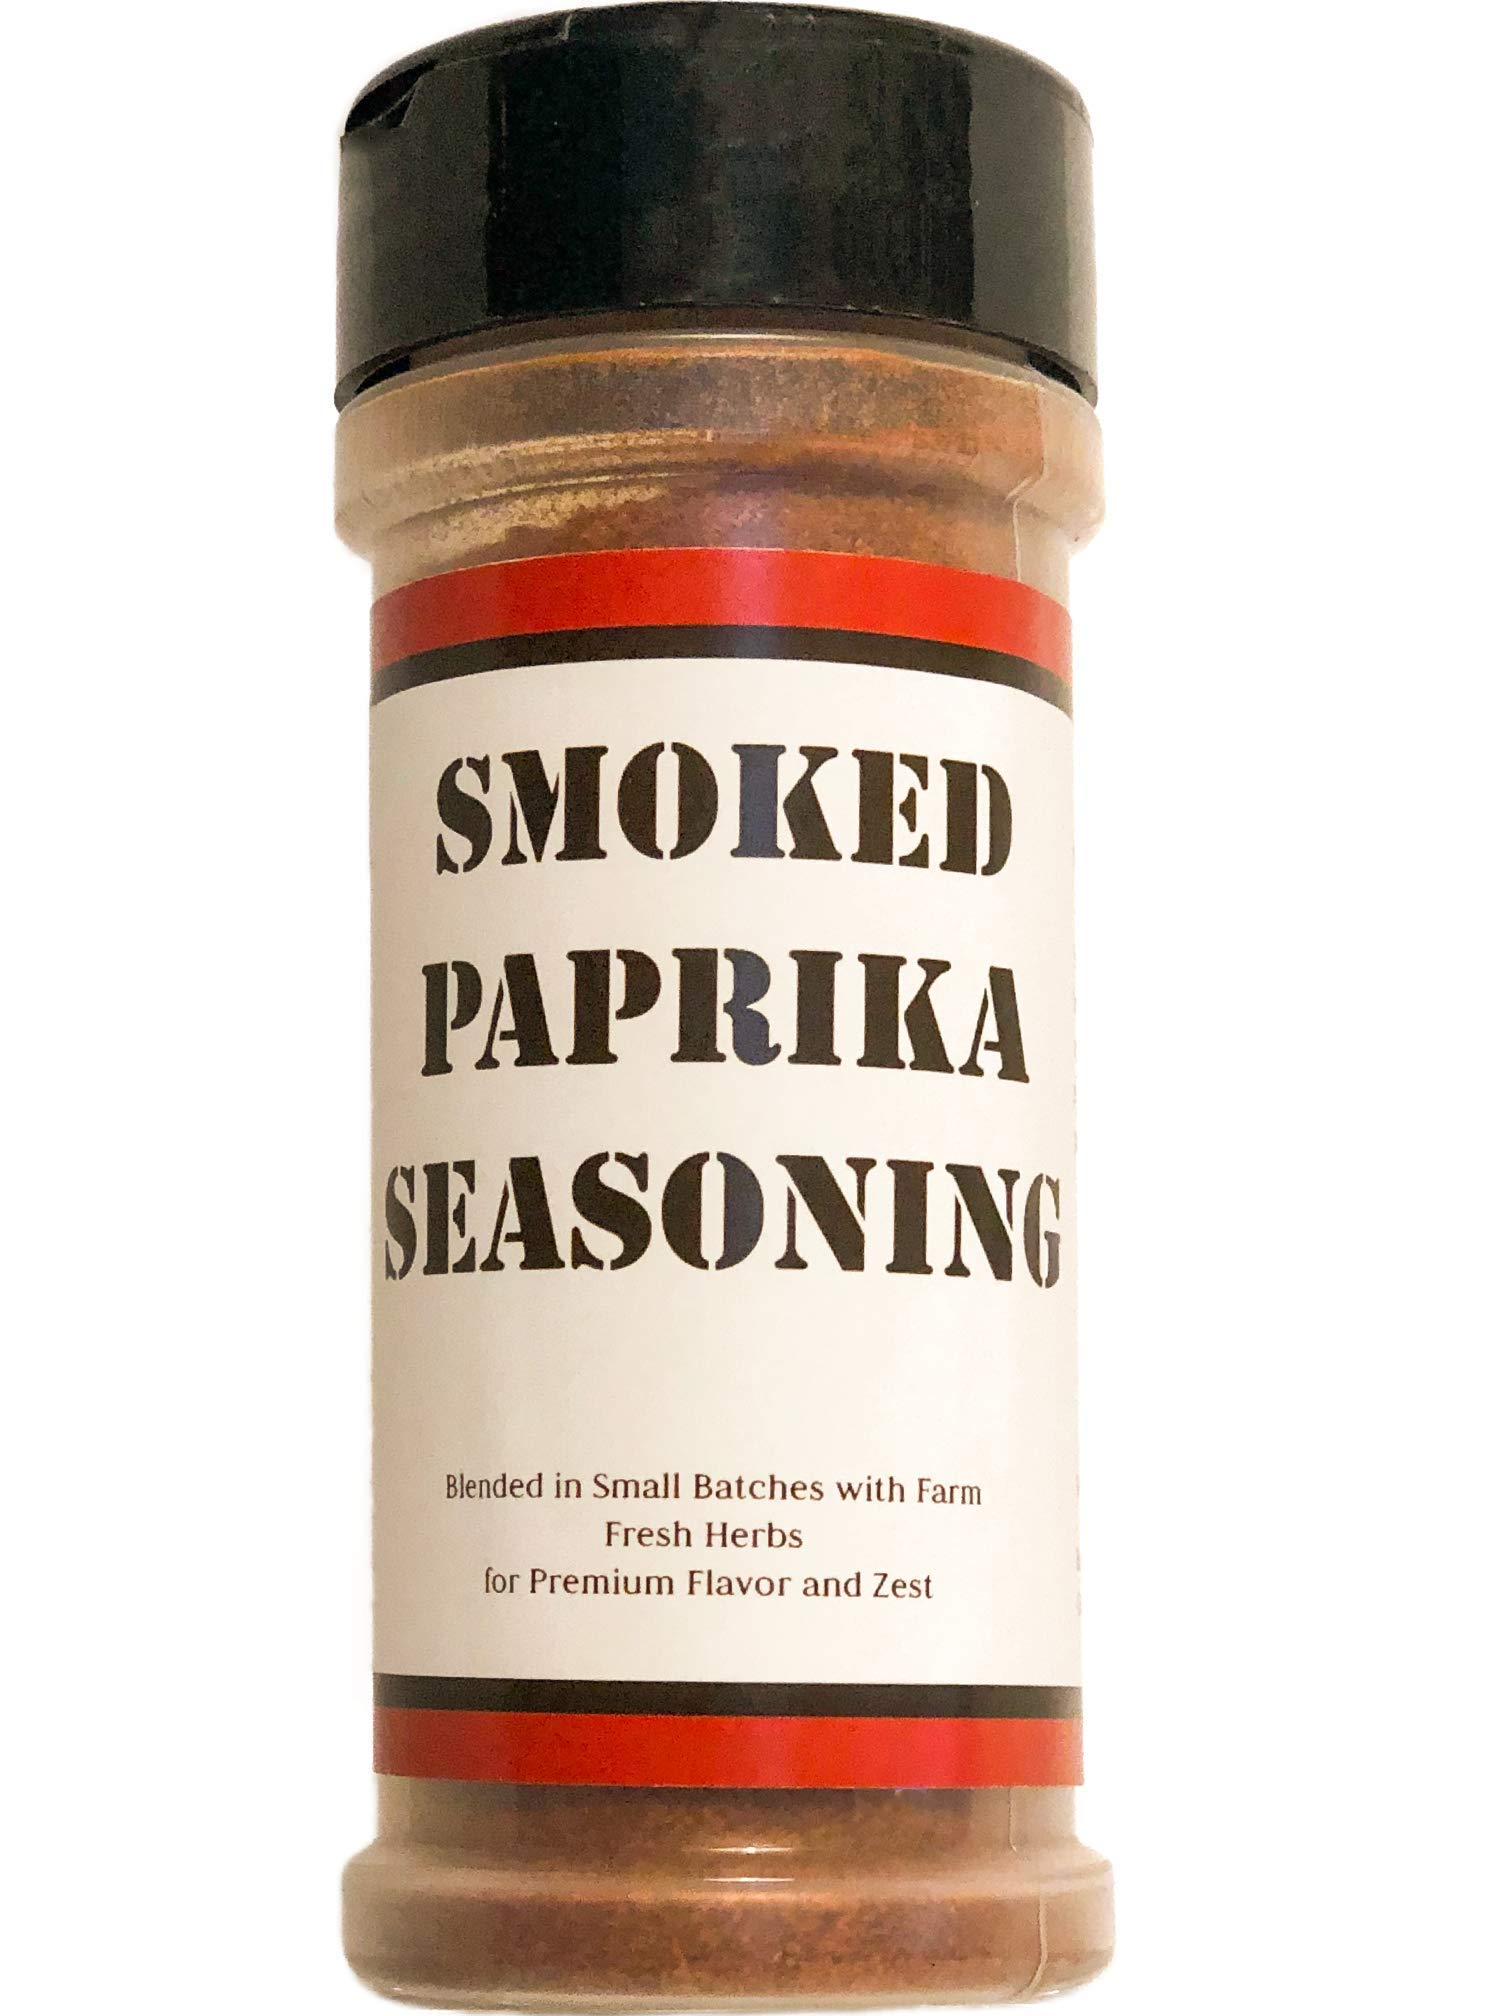 Premium Smoked Paprika Seasoning - Crafted in Small Batches with Farm Fresh Herbs for Premium Flavor and Zest